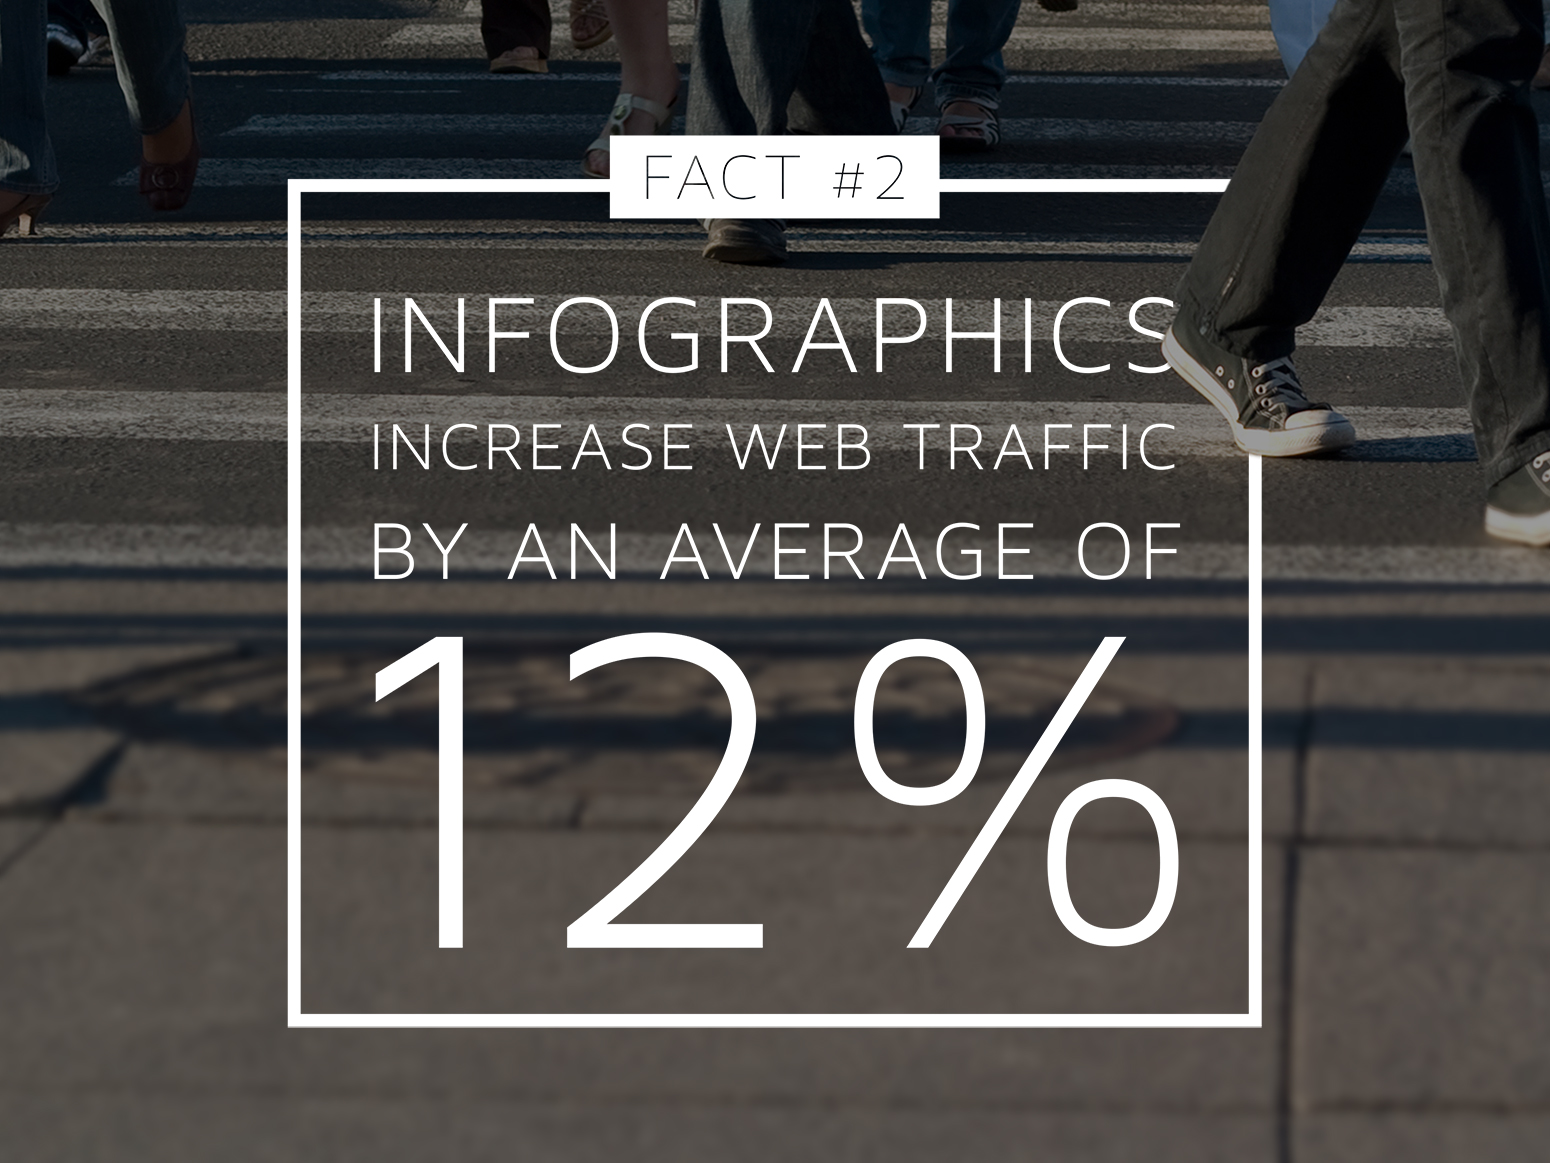 2-infographics-increase-web-traffic-by-an-average-of-12percent